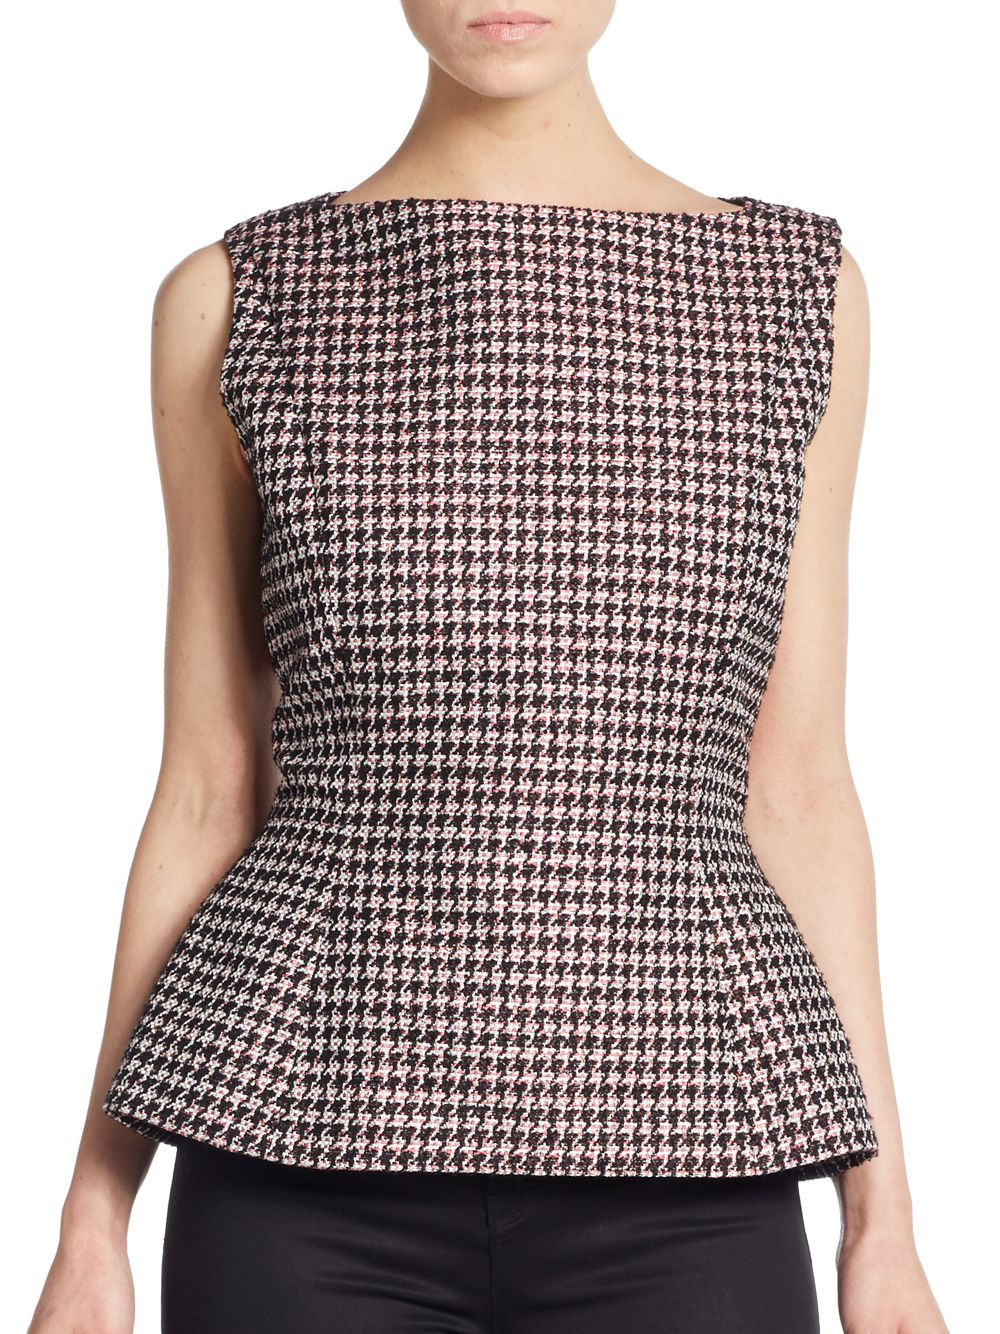 christian-dior-rose-multi-tweed-houndstooth-peplum-top-pink-product-0-290613542-normal.jpeg